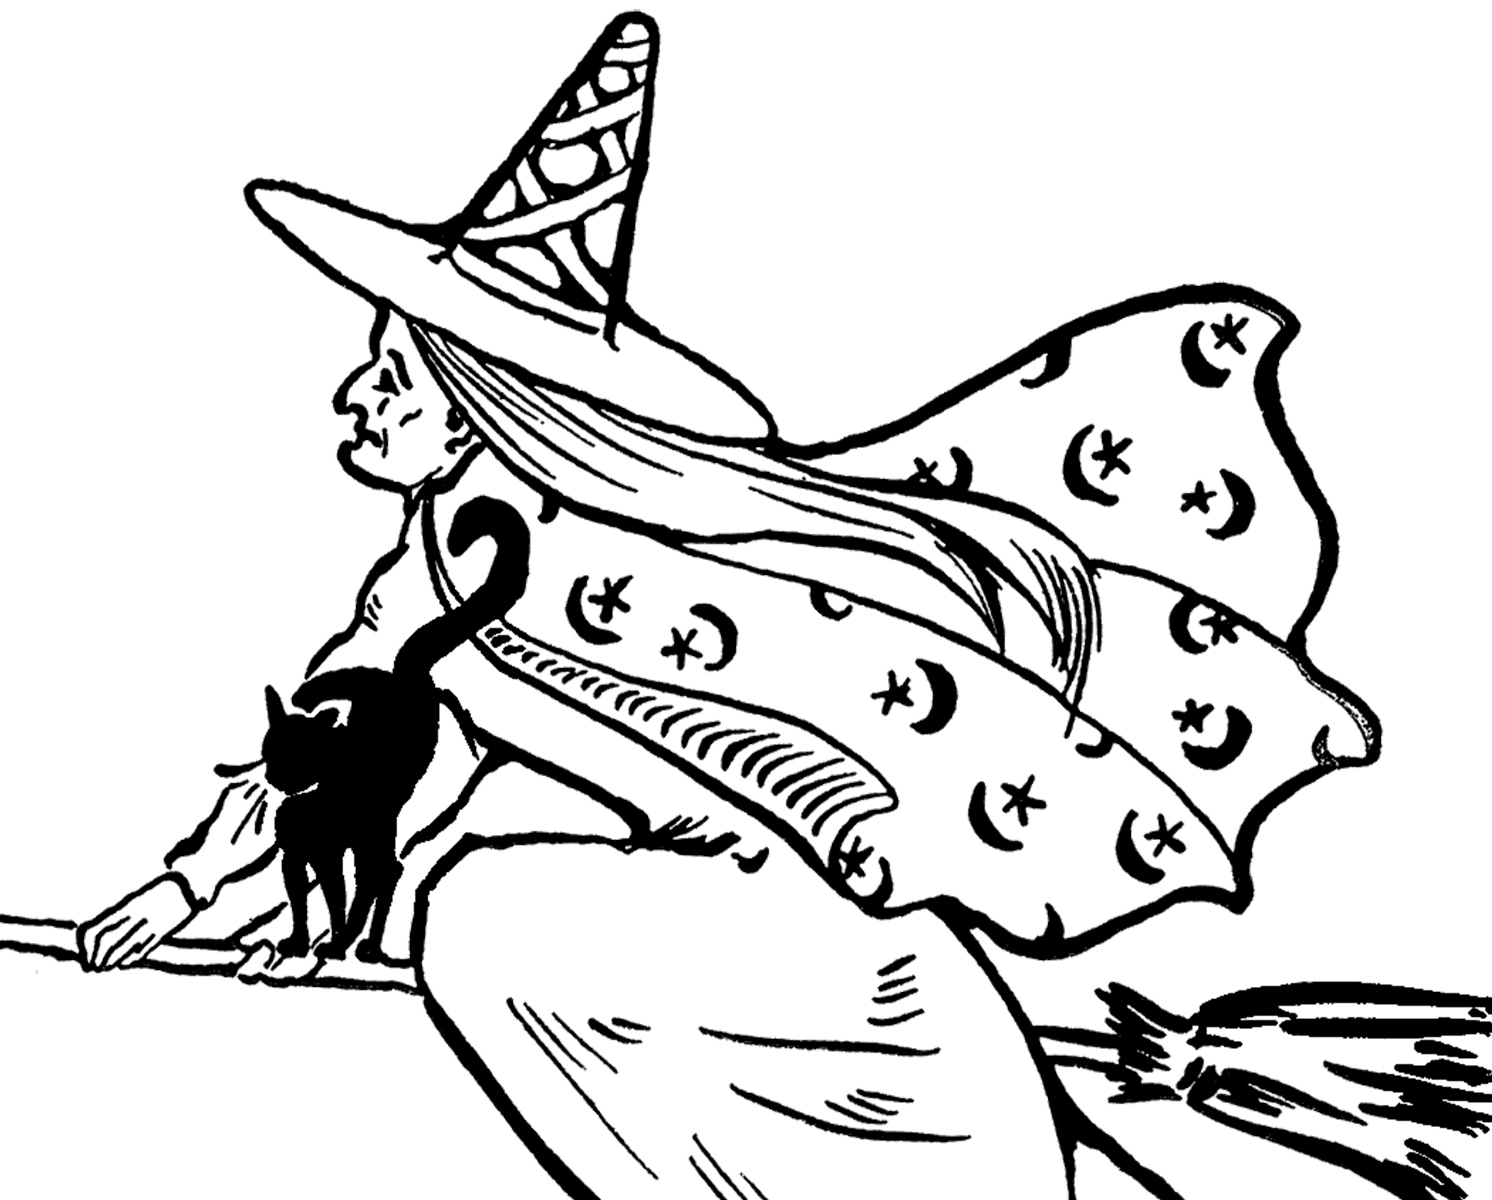 Witch book free clipart jpg freeuse download Free Flying Witch Clip Art! - The Graphics Fairy jpg freeuse download